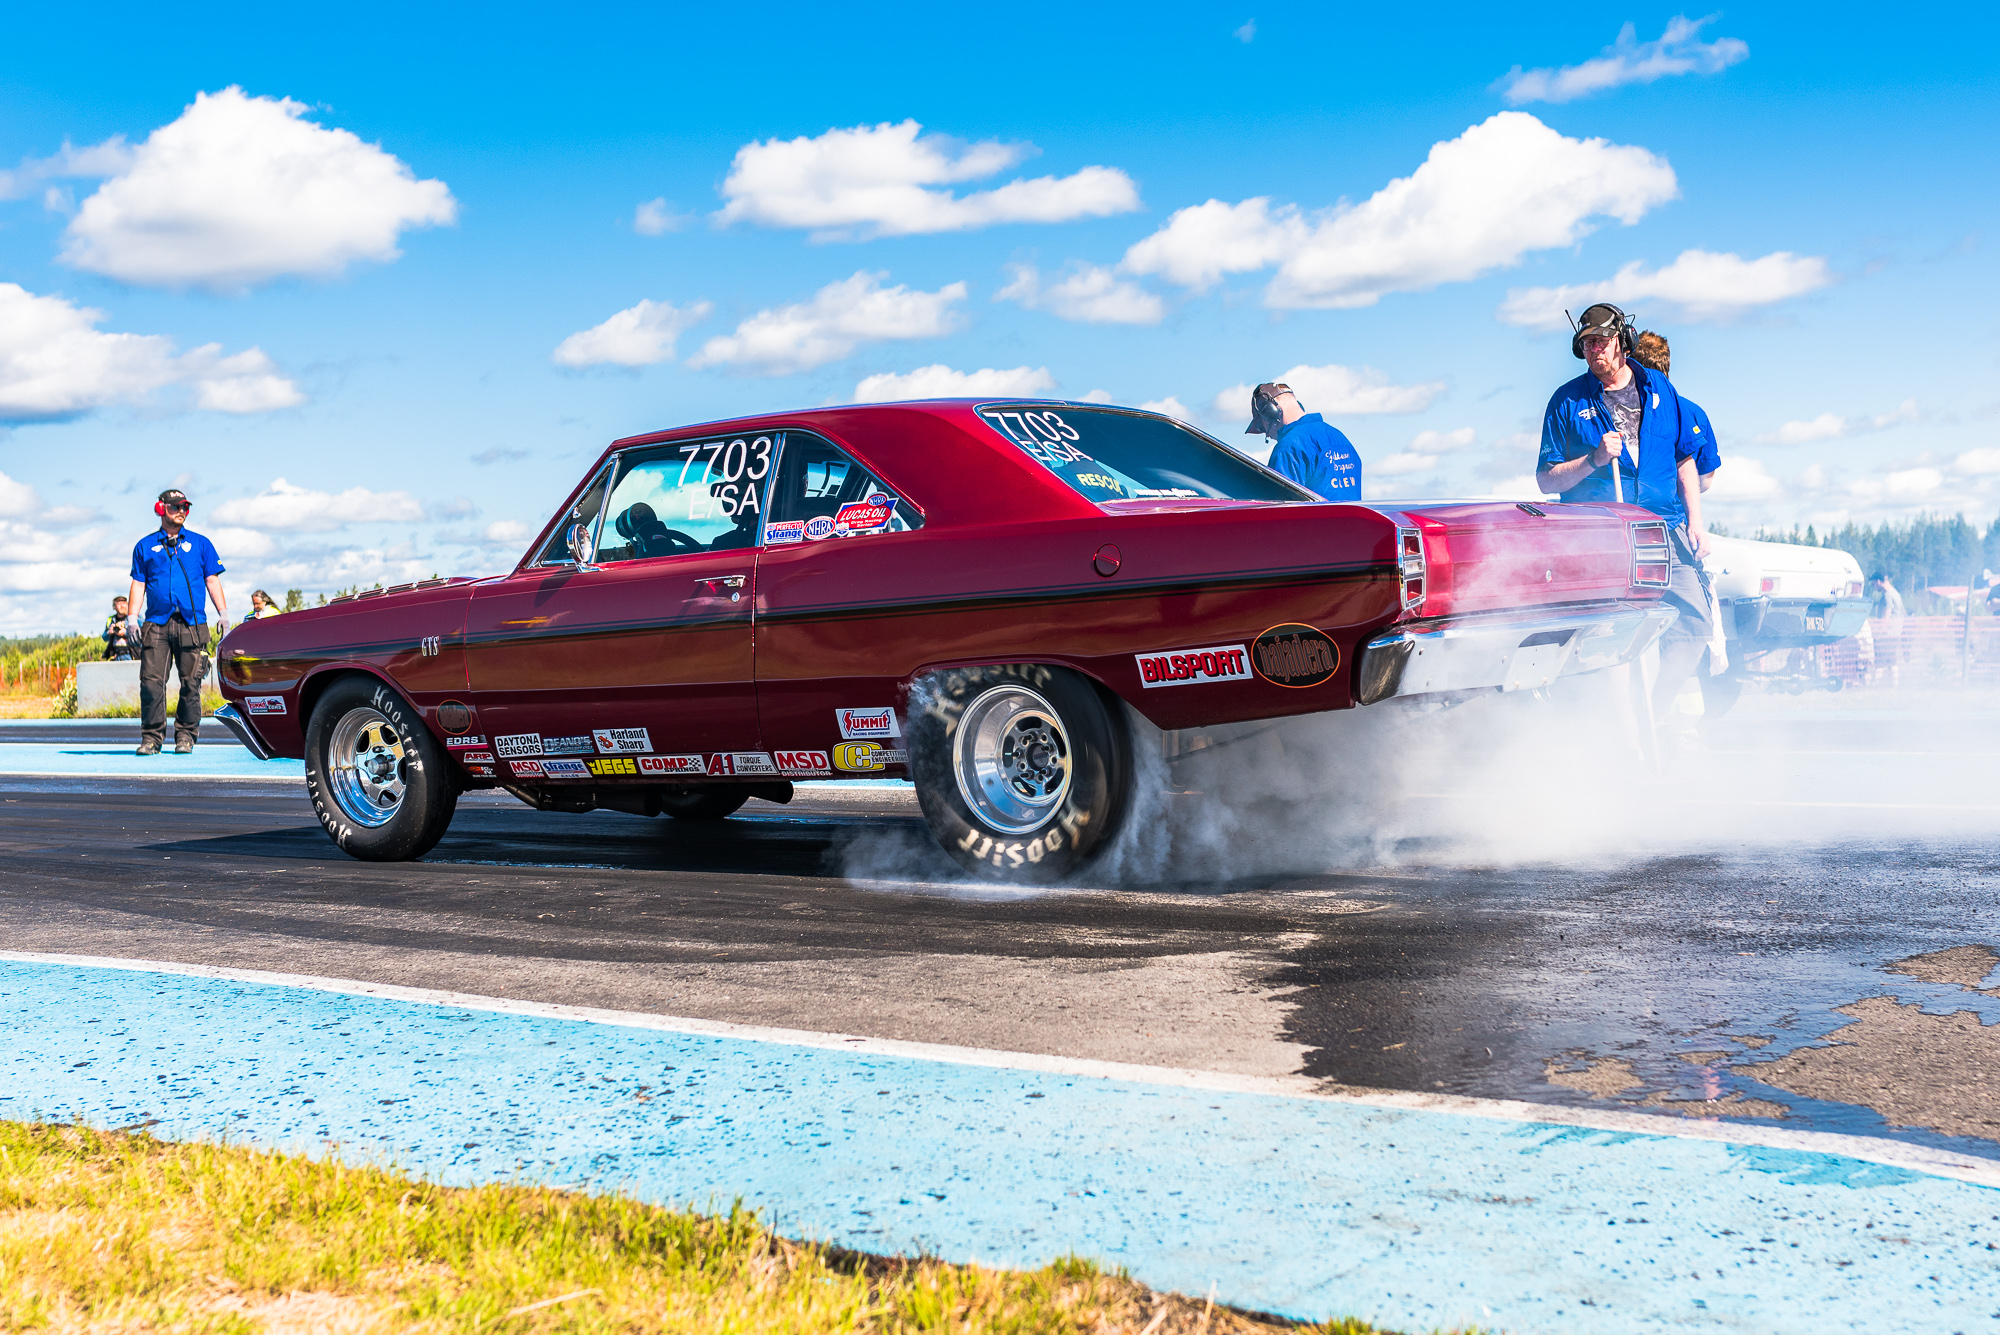 SHRA dragracing Fällfors Raceway – Goldtown SummerNats 2017